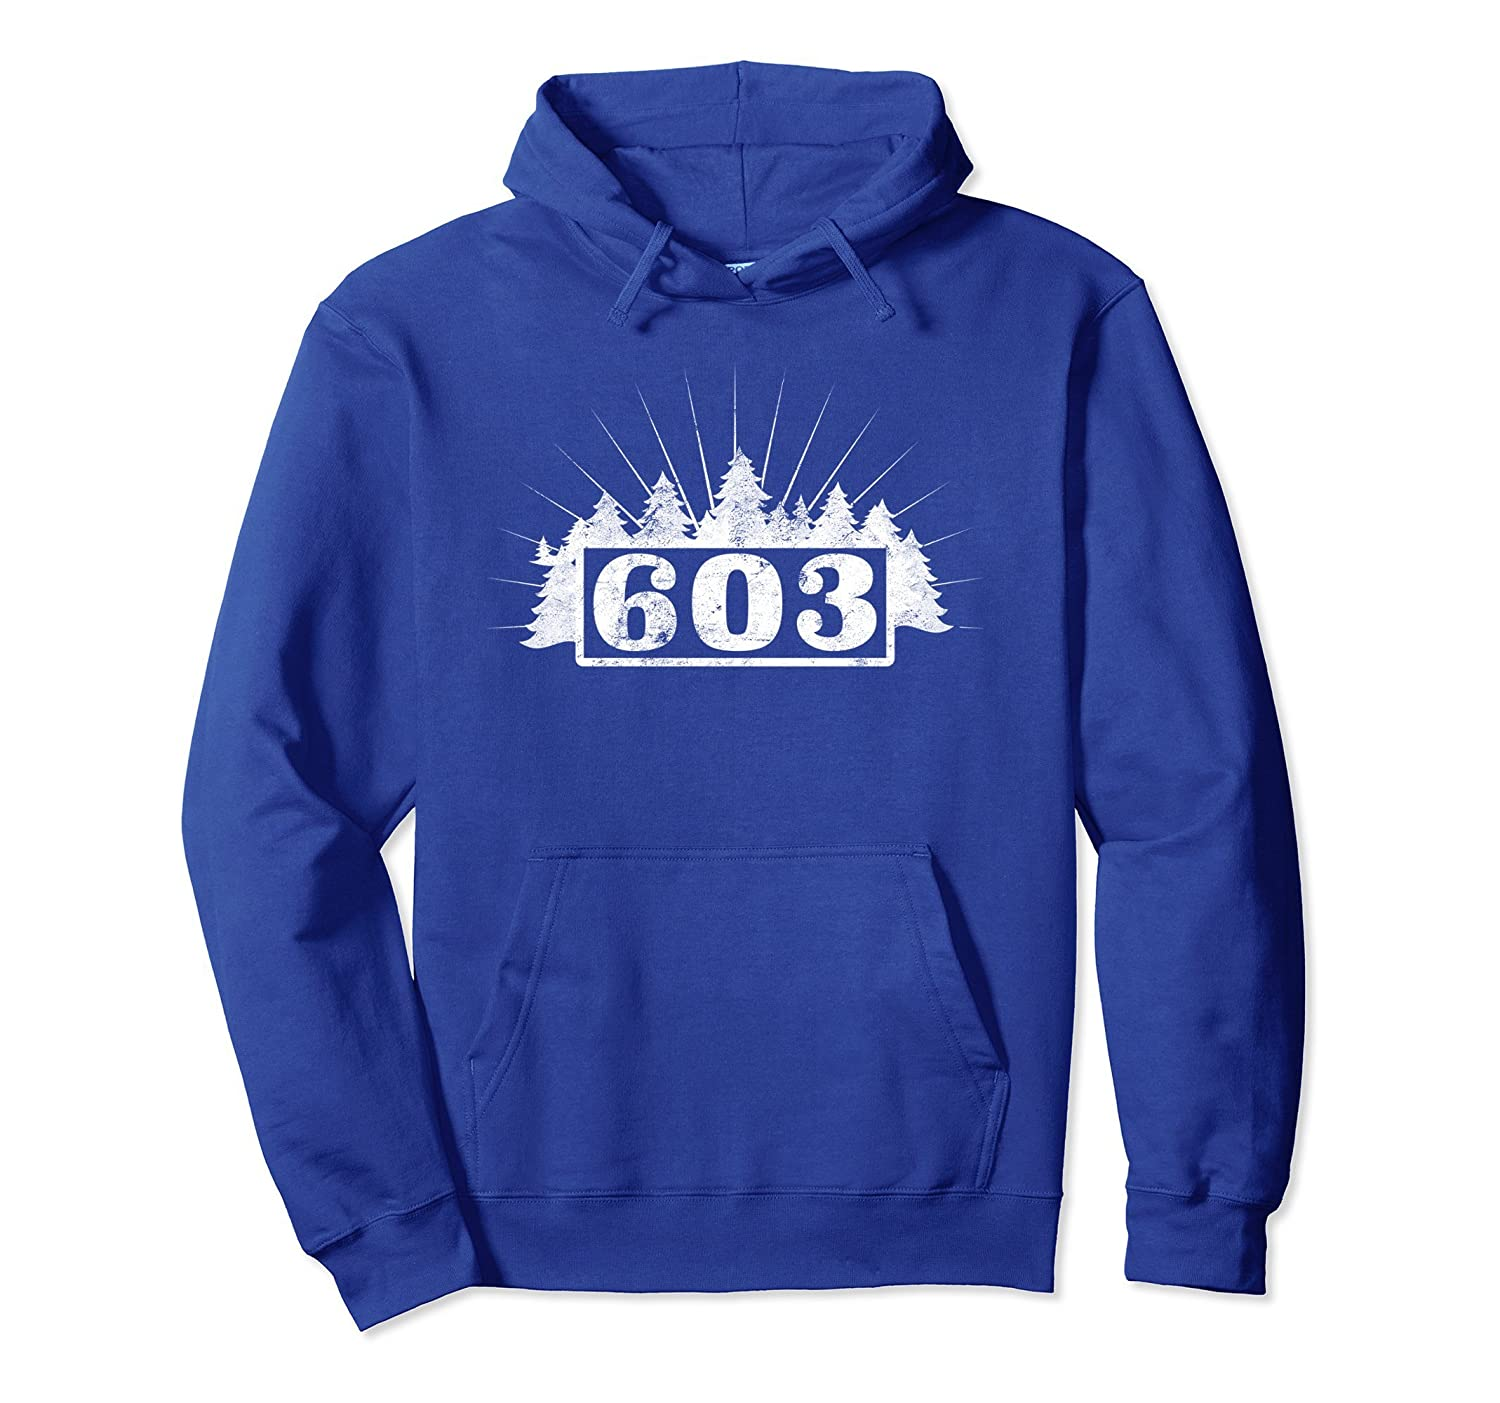 603 in the trees: New Hampshire area code hooded sweatshirt-ln